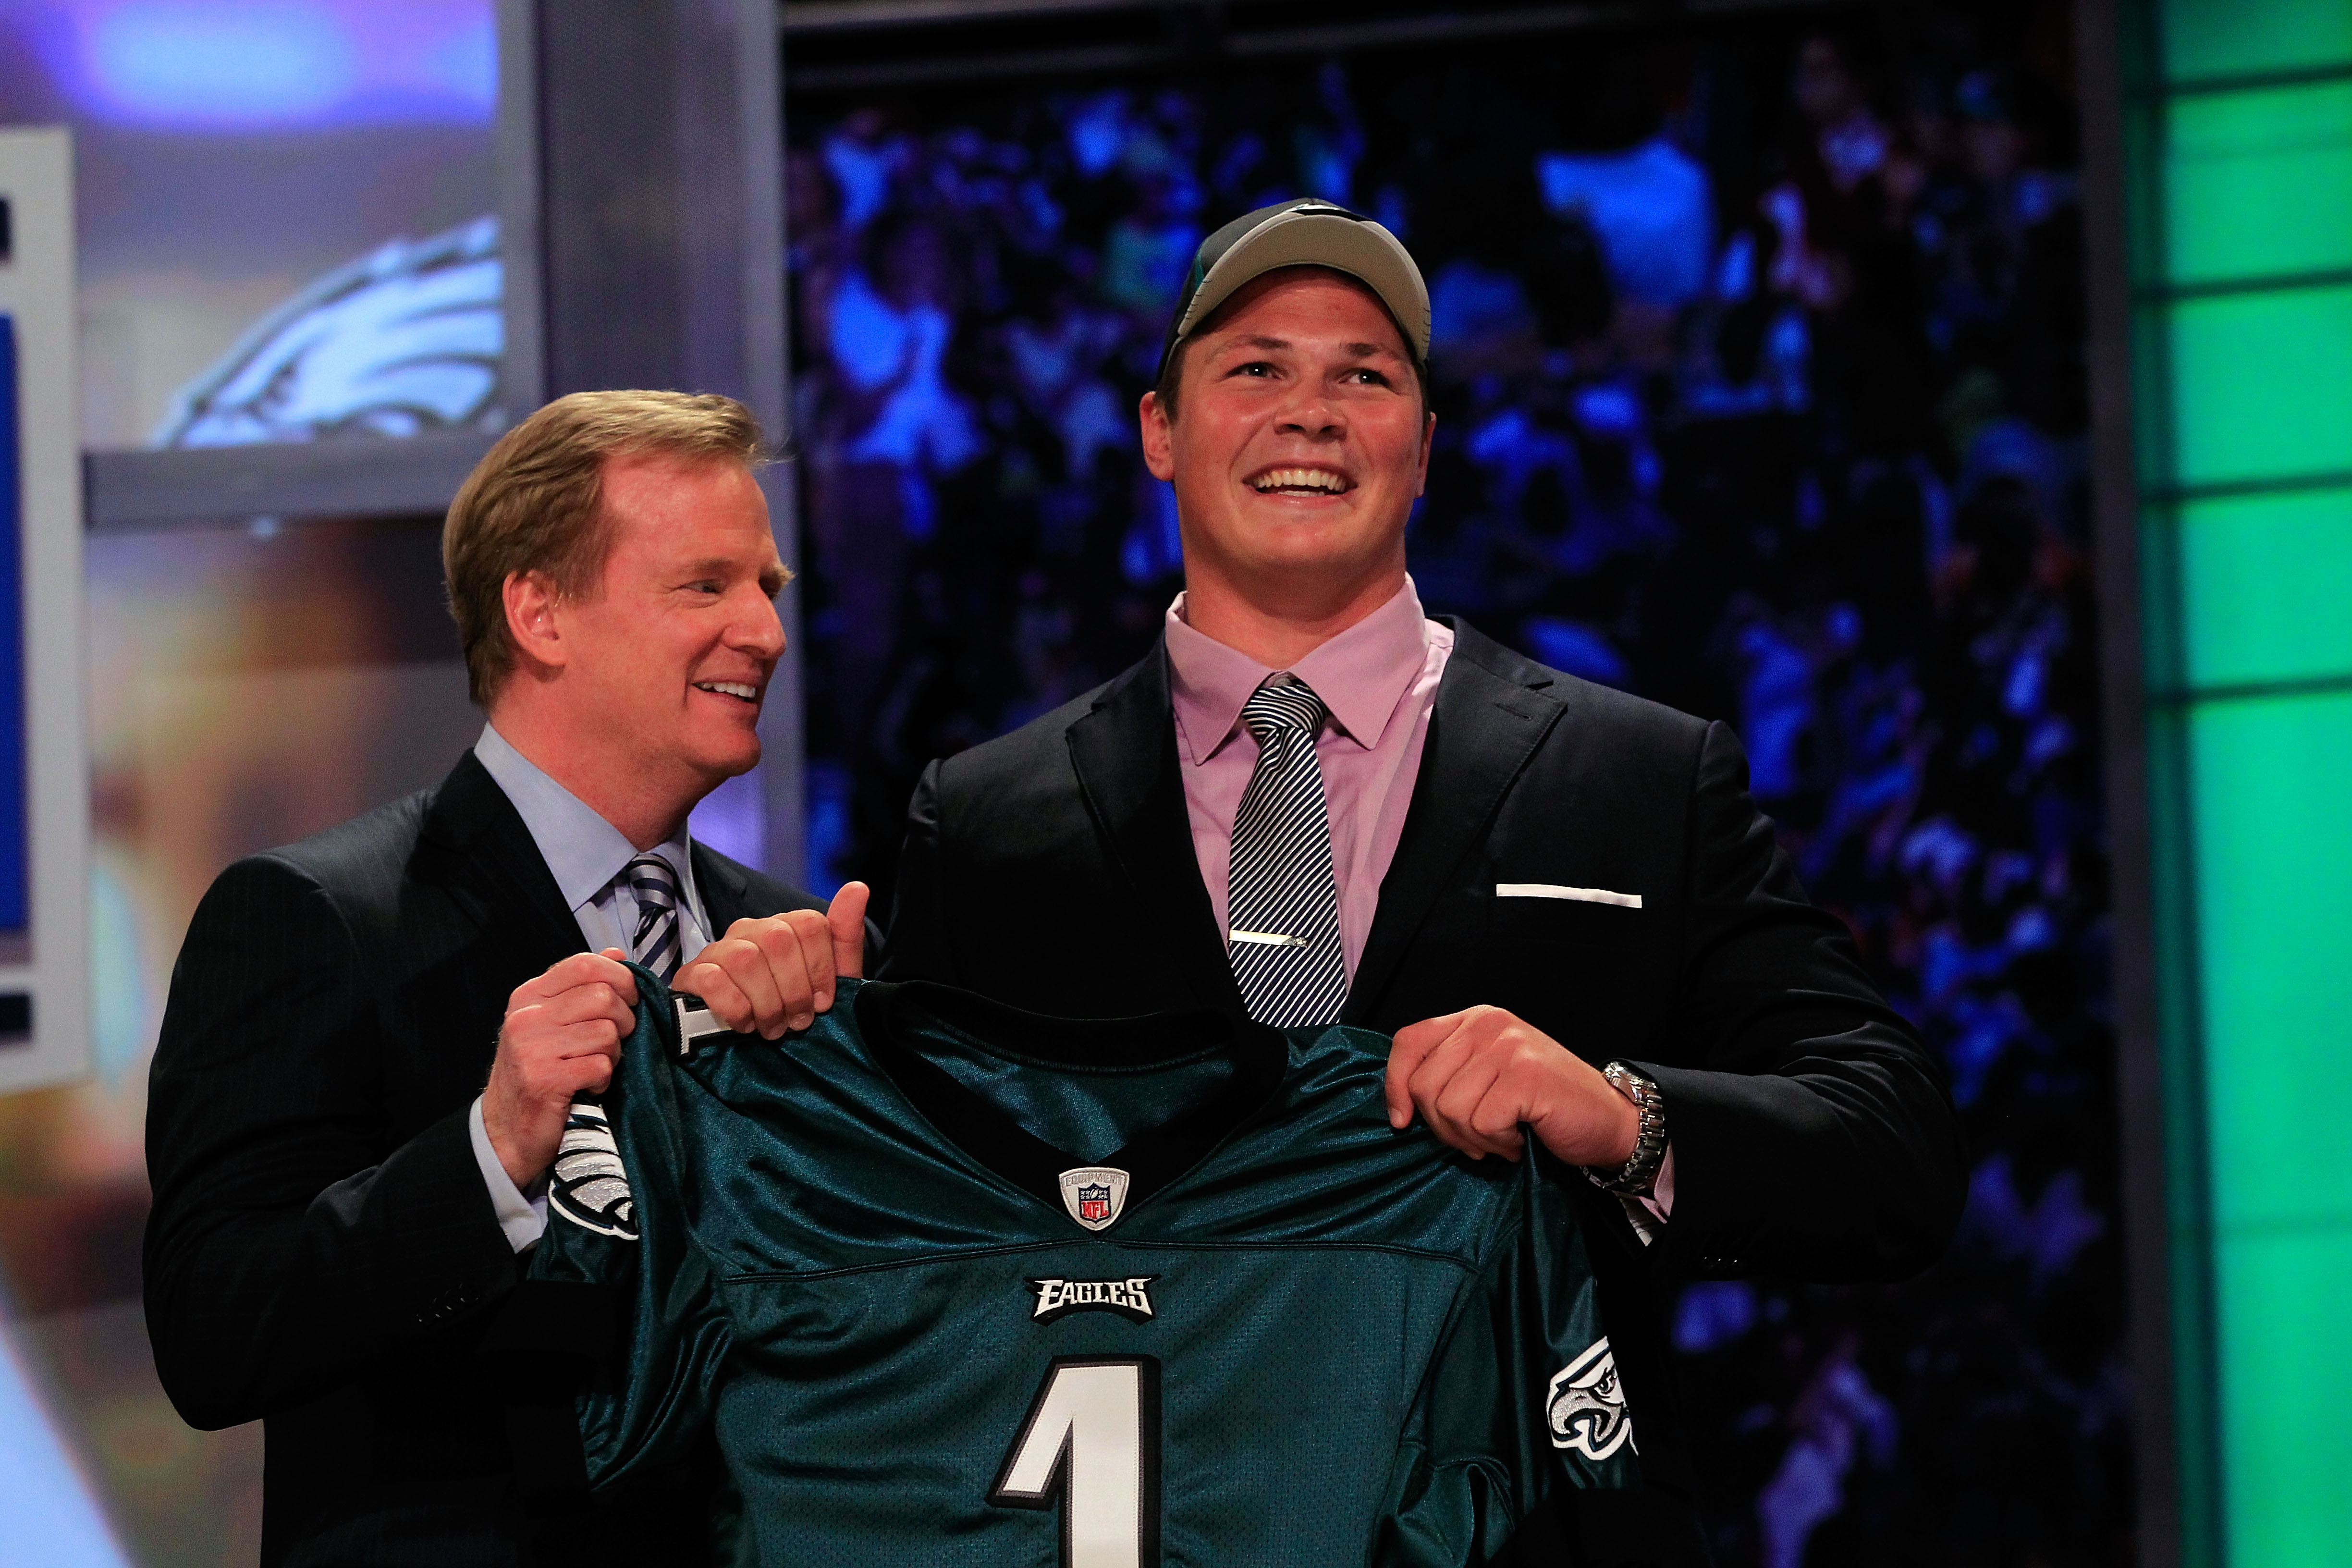 NEW YORK, NY - APRIL 28:  NFL Commissioner Roger Goodell (L) poses for a photo with Danny Watkins, #22 overall pick by the Philadelphia Eagles, on stage during the 2011 NFL Draft at Radio City Music Hall on April 28, 2011 in New York City.  (Photo by Chri